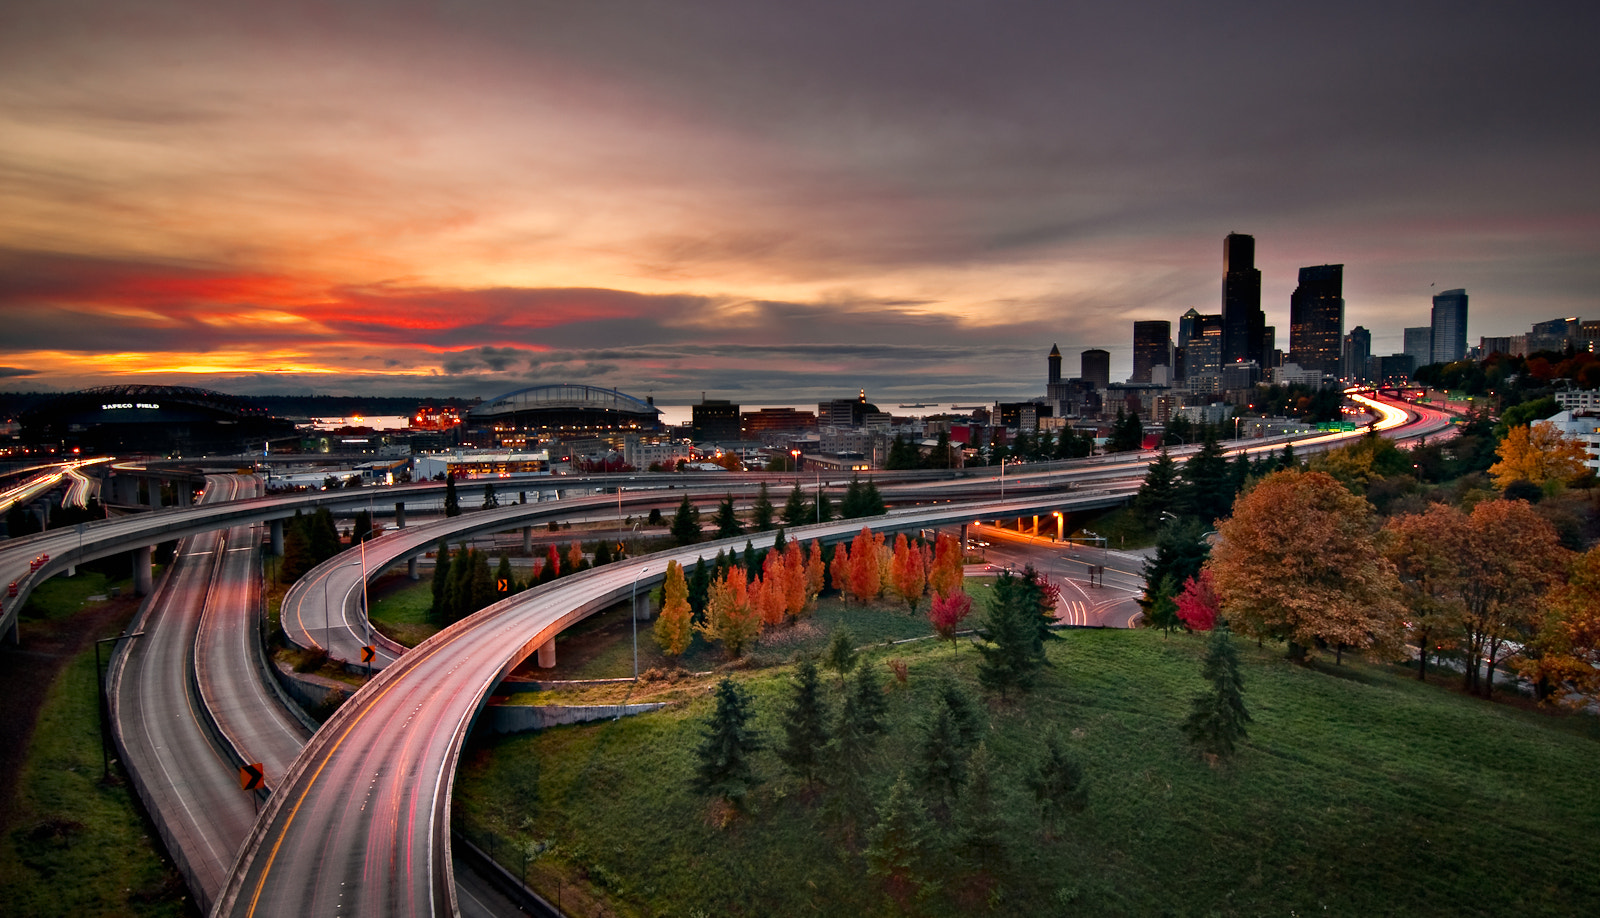 Photograph Seattle in Autumn  by Jay D. on 500px